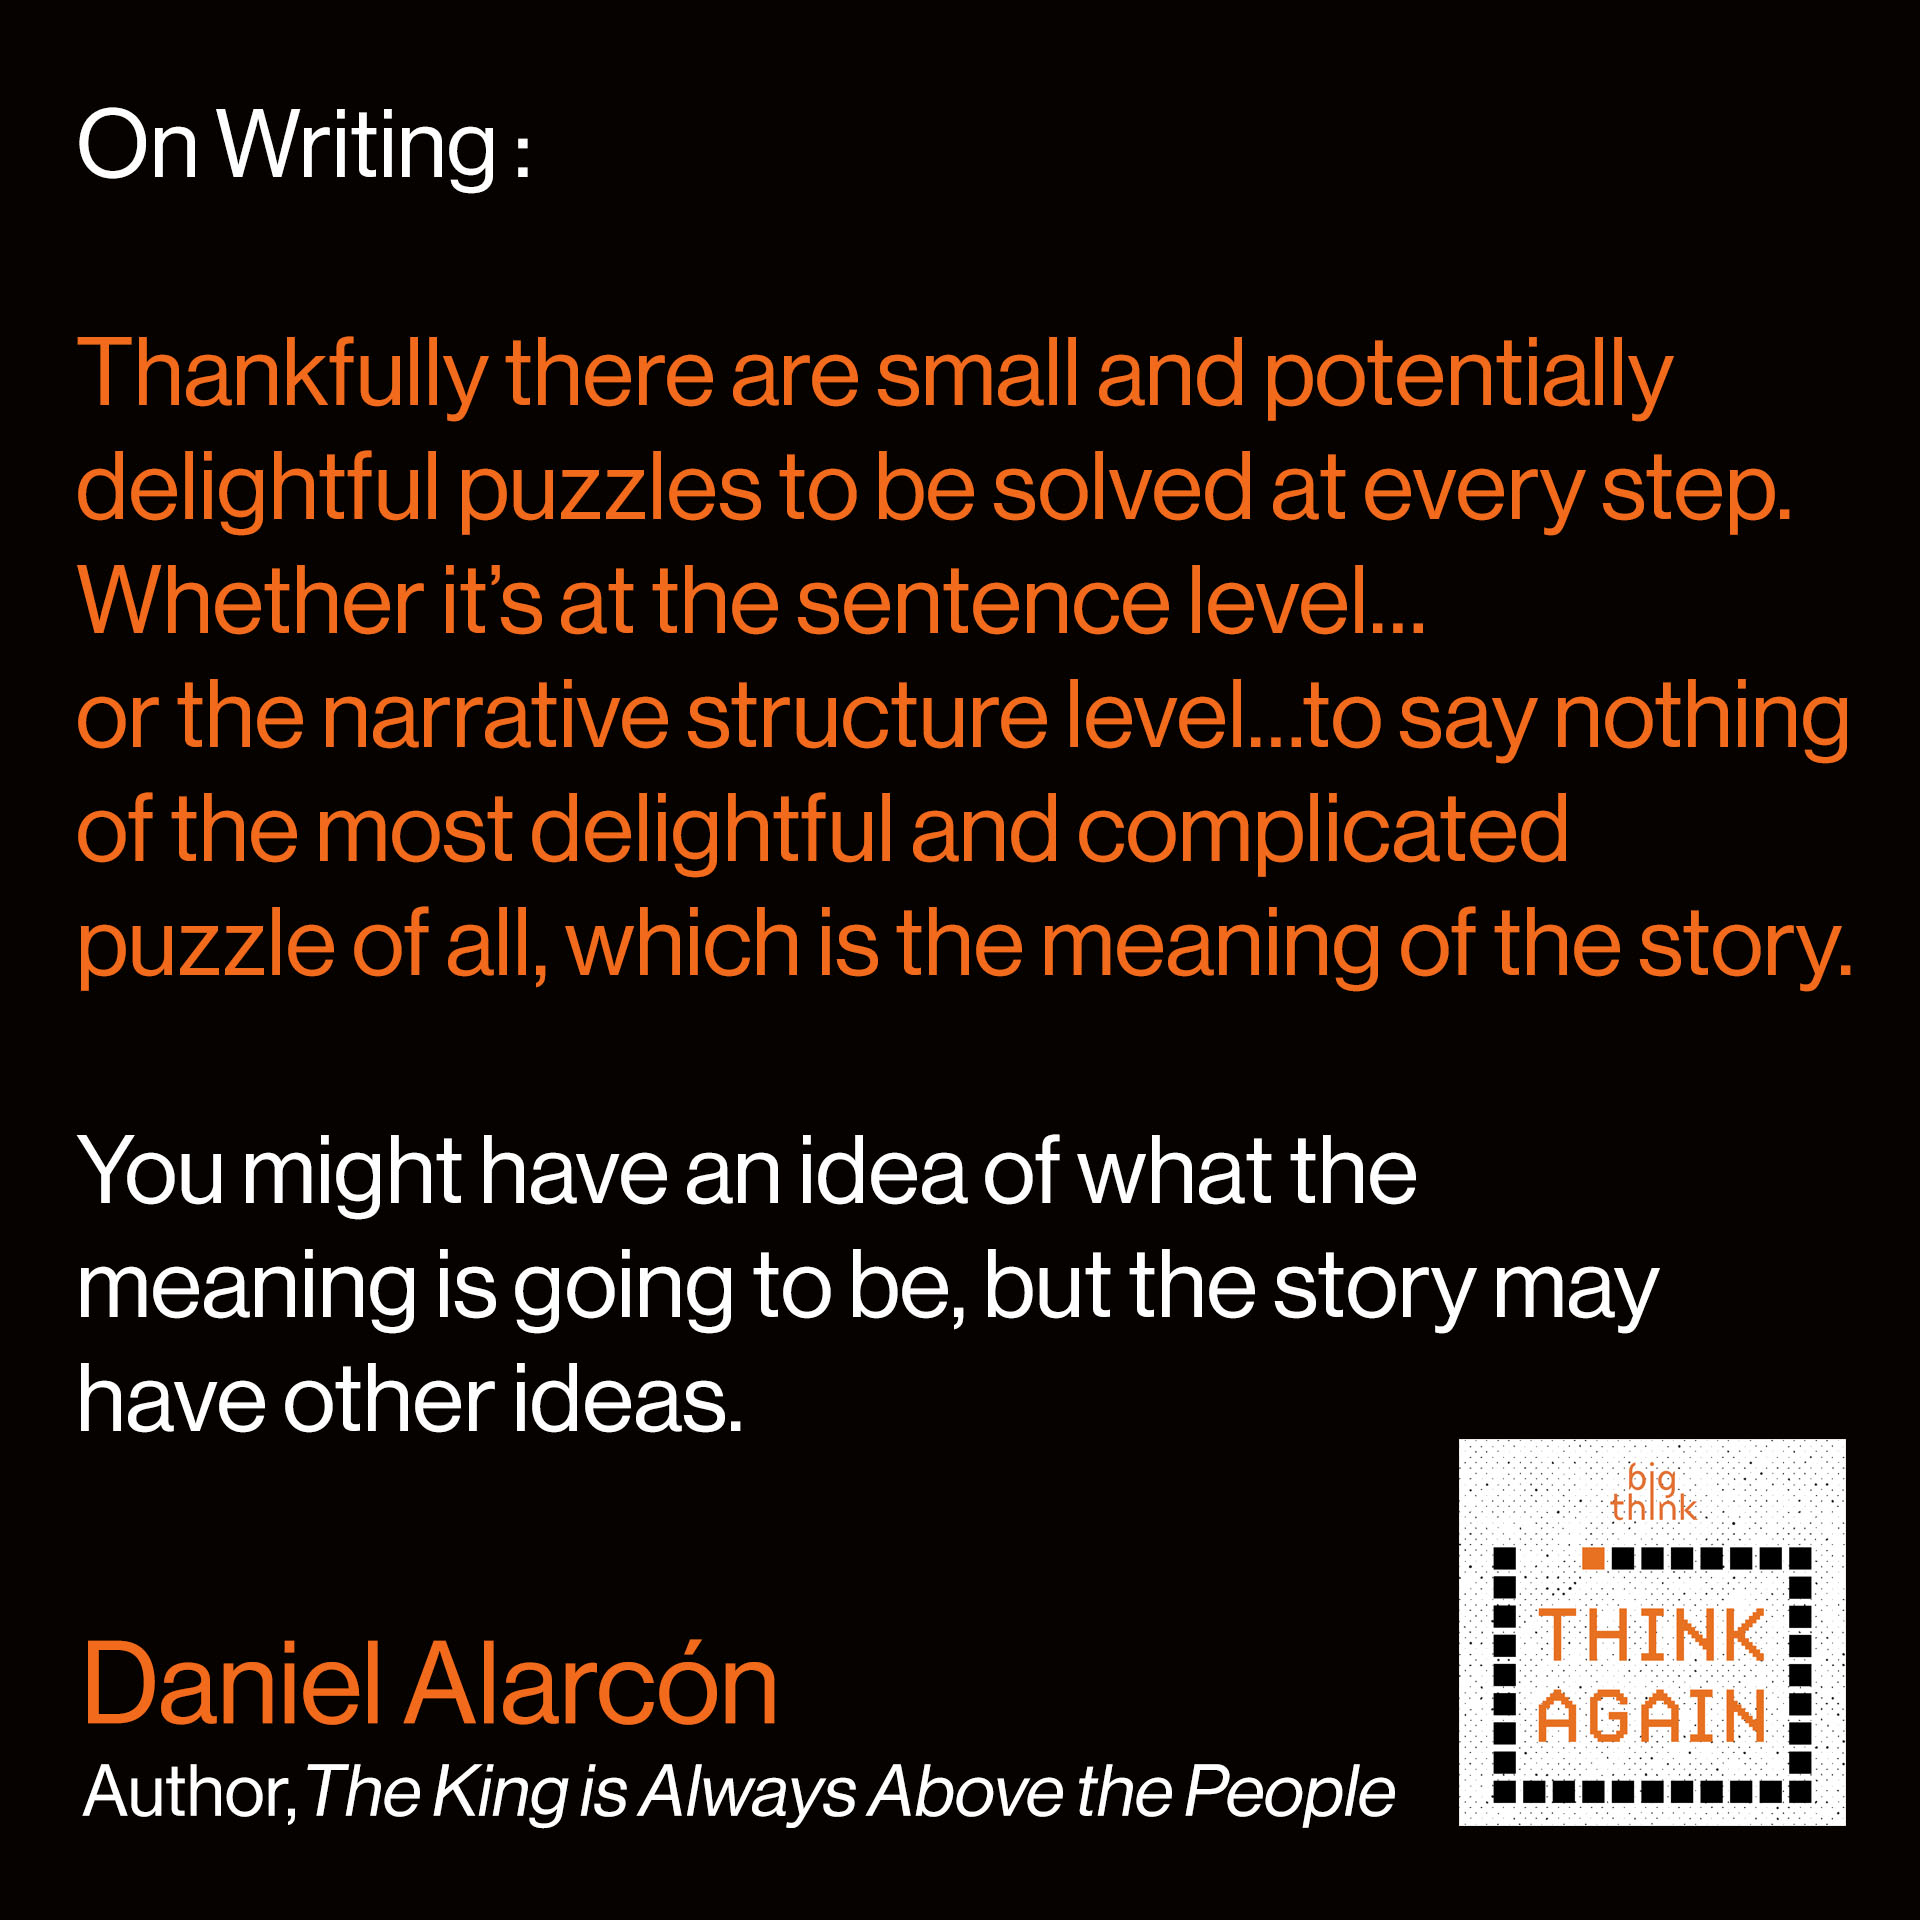 Daniel Alarcon On Writing: There are small and potentially delightful puzzles to be solved at every step.  Whether it's at the sentence level…or the narrative structure level…to say nothing of the most  delightful and complicated puzzle of all, which is the meaning of the story. And you yourself might have an idea of what the meaning is going to be, but the story itself may have other ideas.